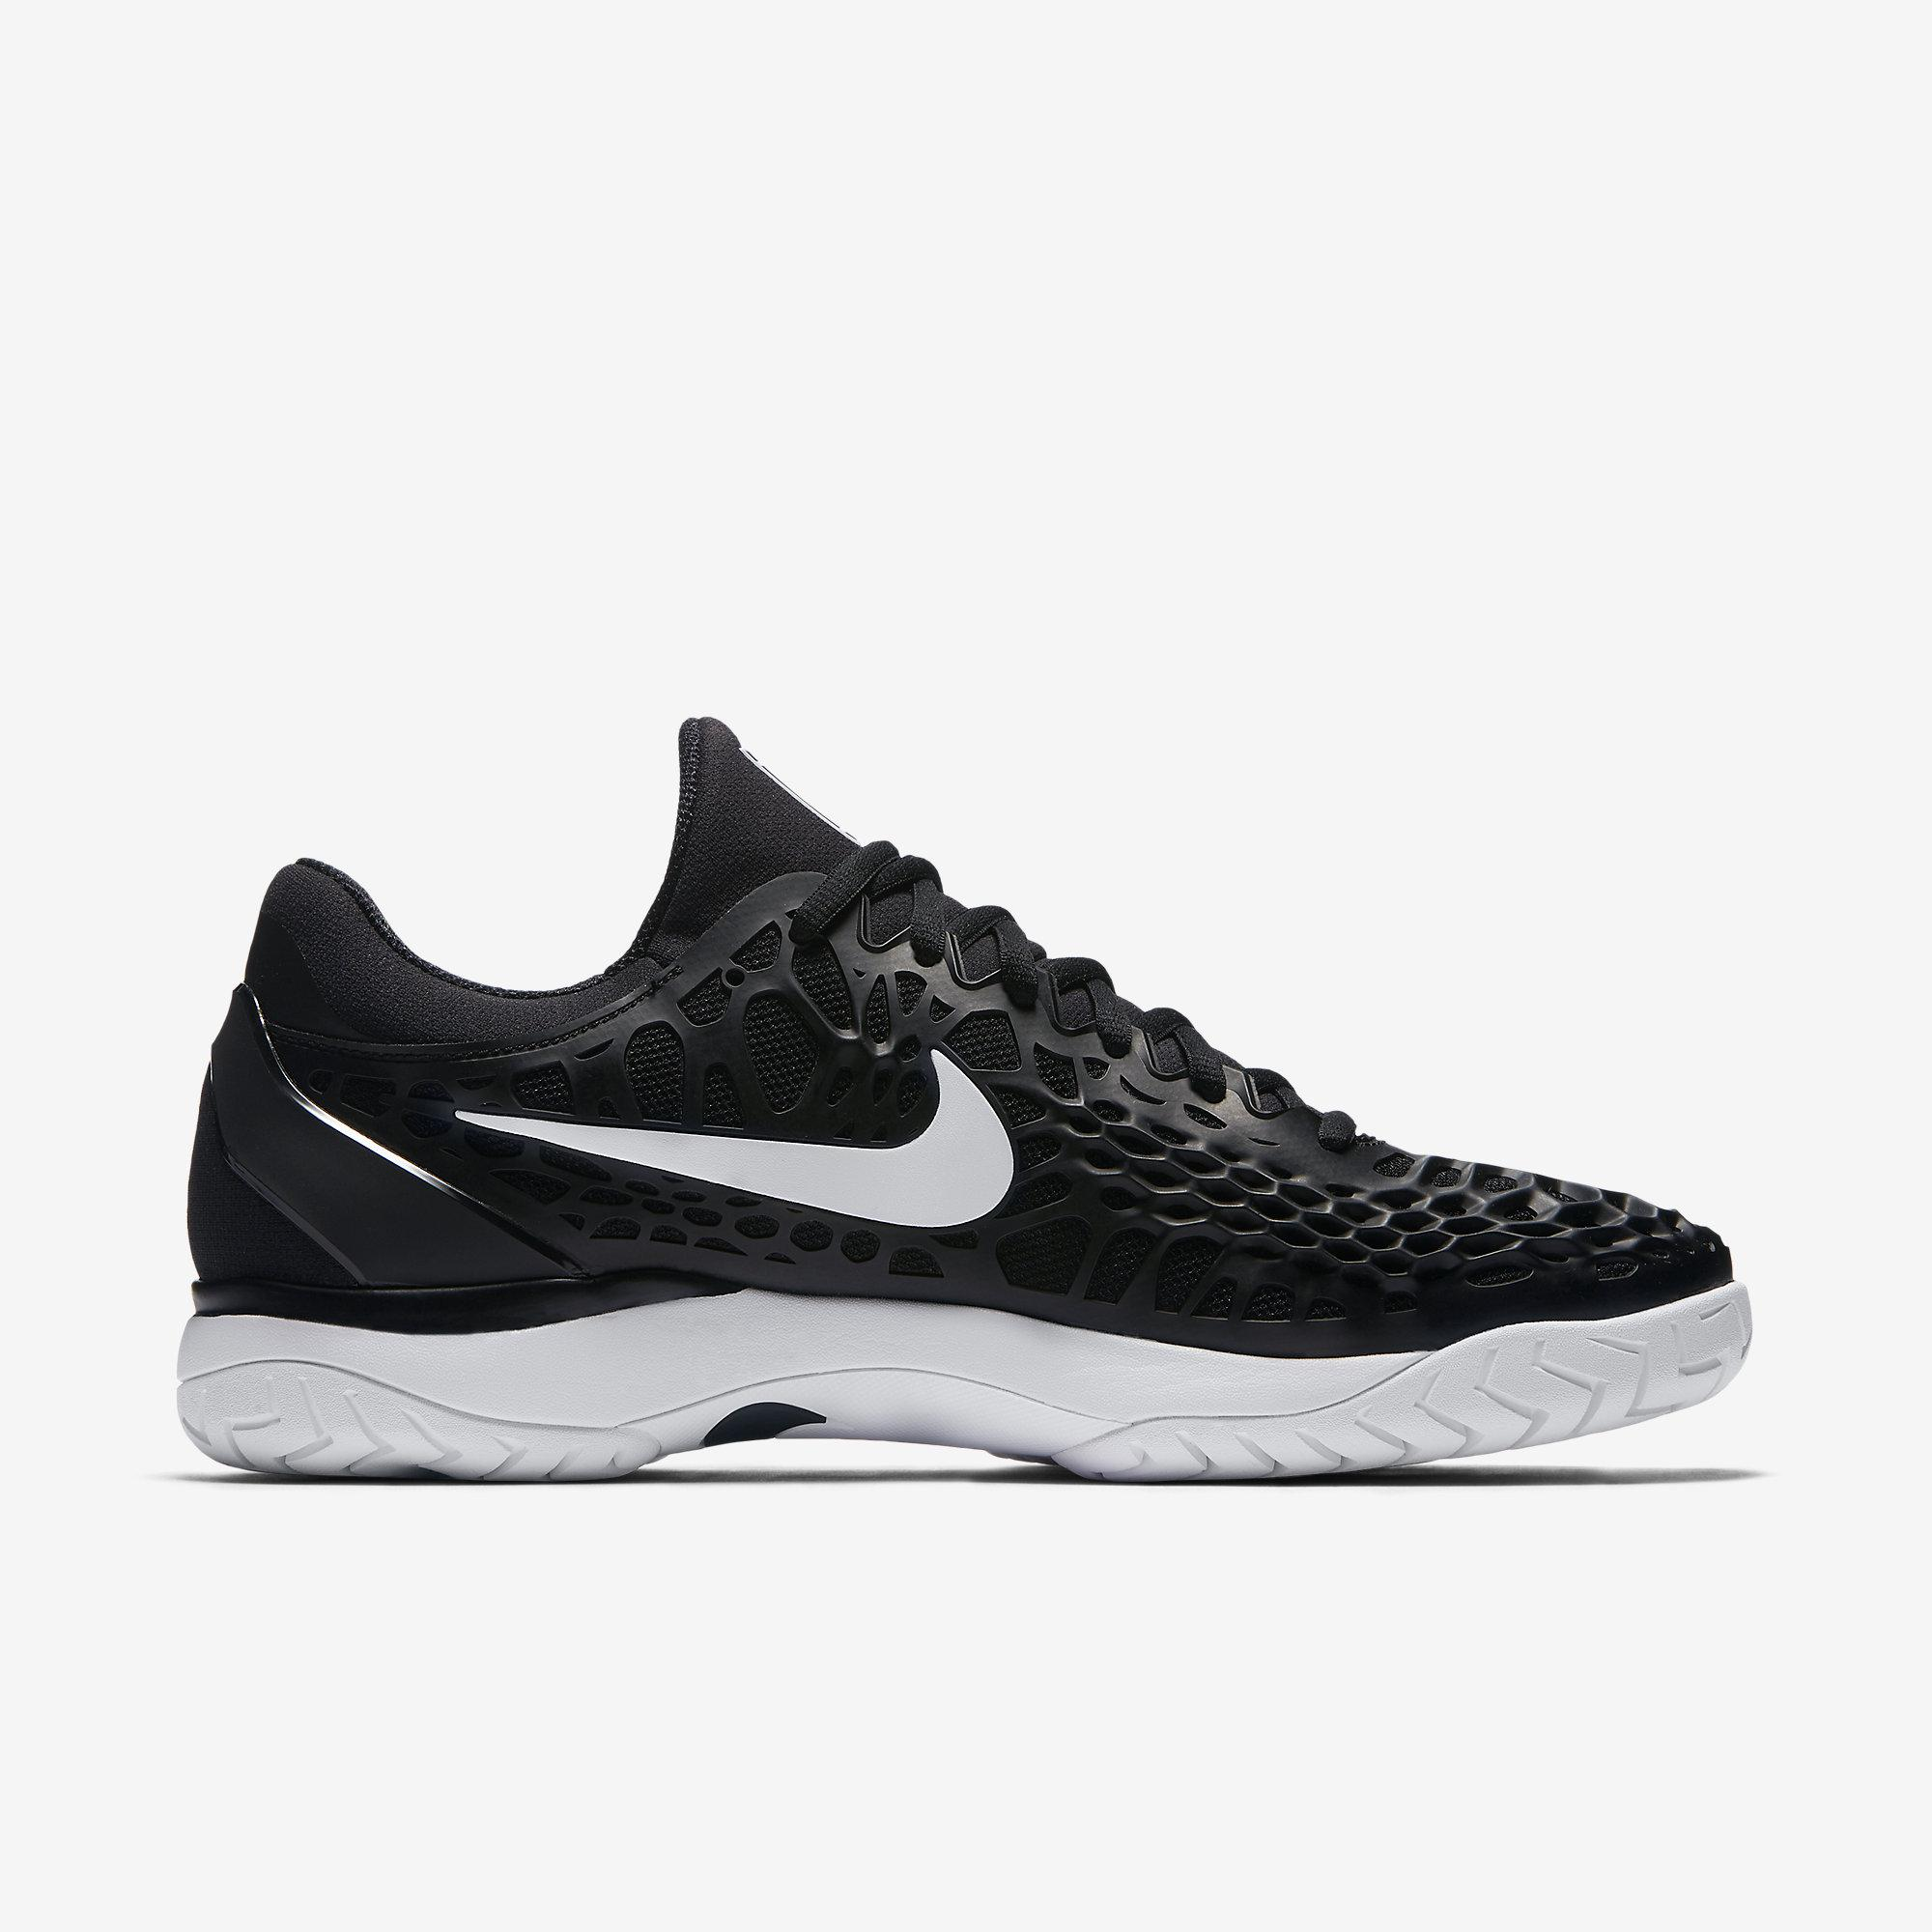 Nike Mens Zoom Cage 3 Tennis Shoes - Black/White ...